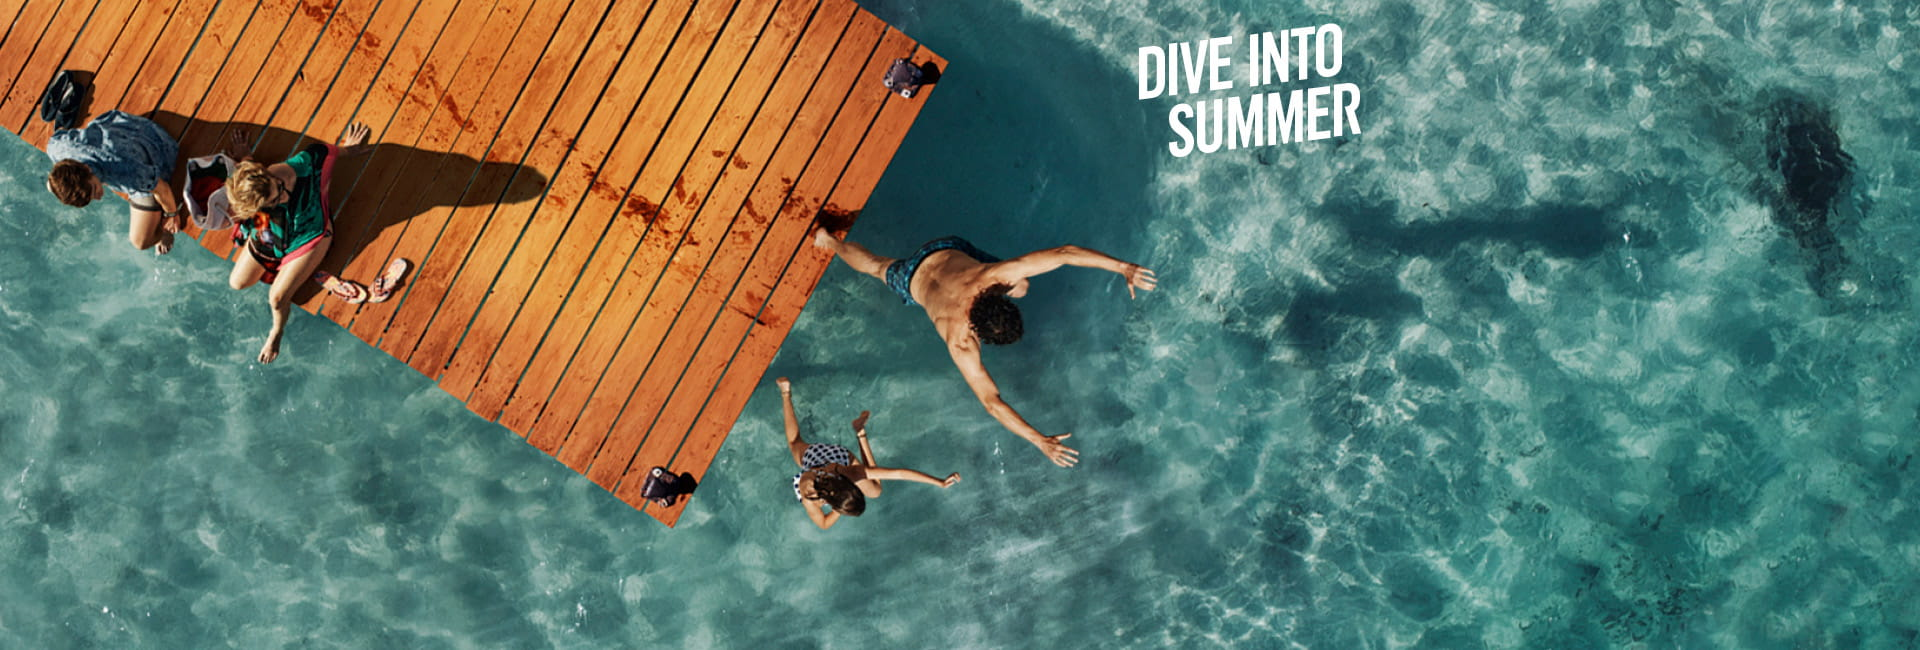 DIVE INTO SUMMER . 300,000 seats from £49.99* one way pp, two flying. Book flights.